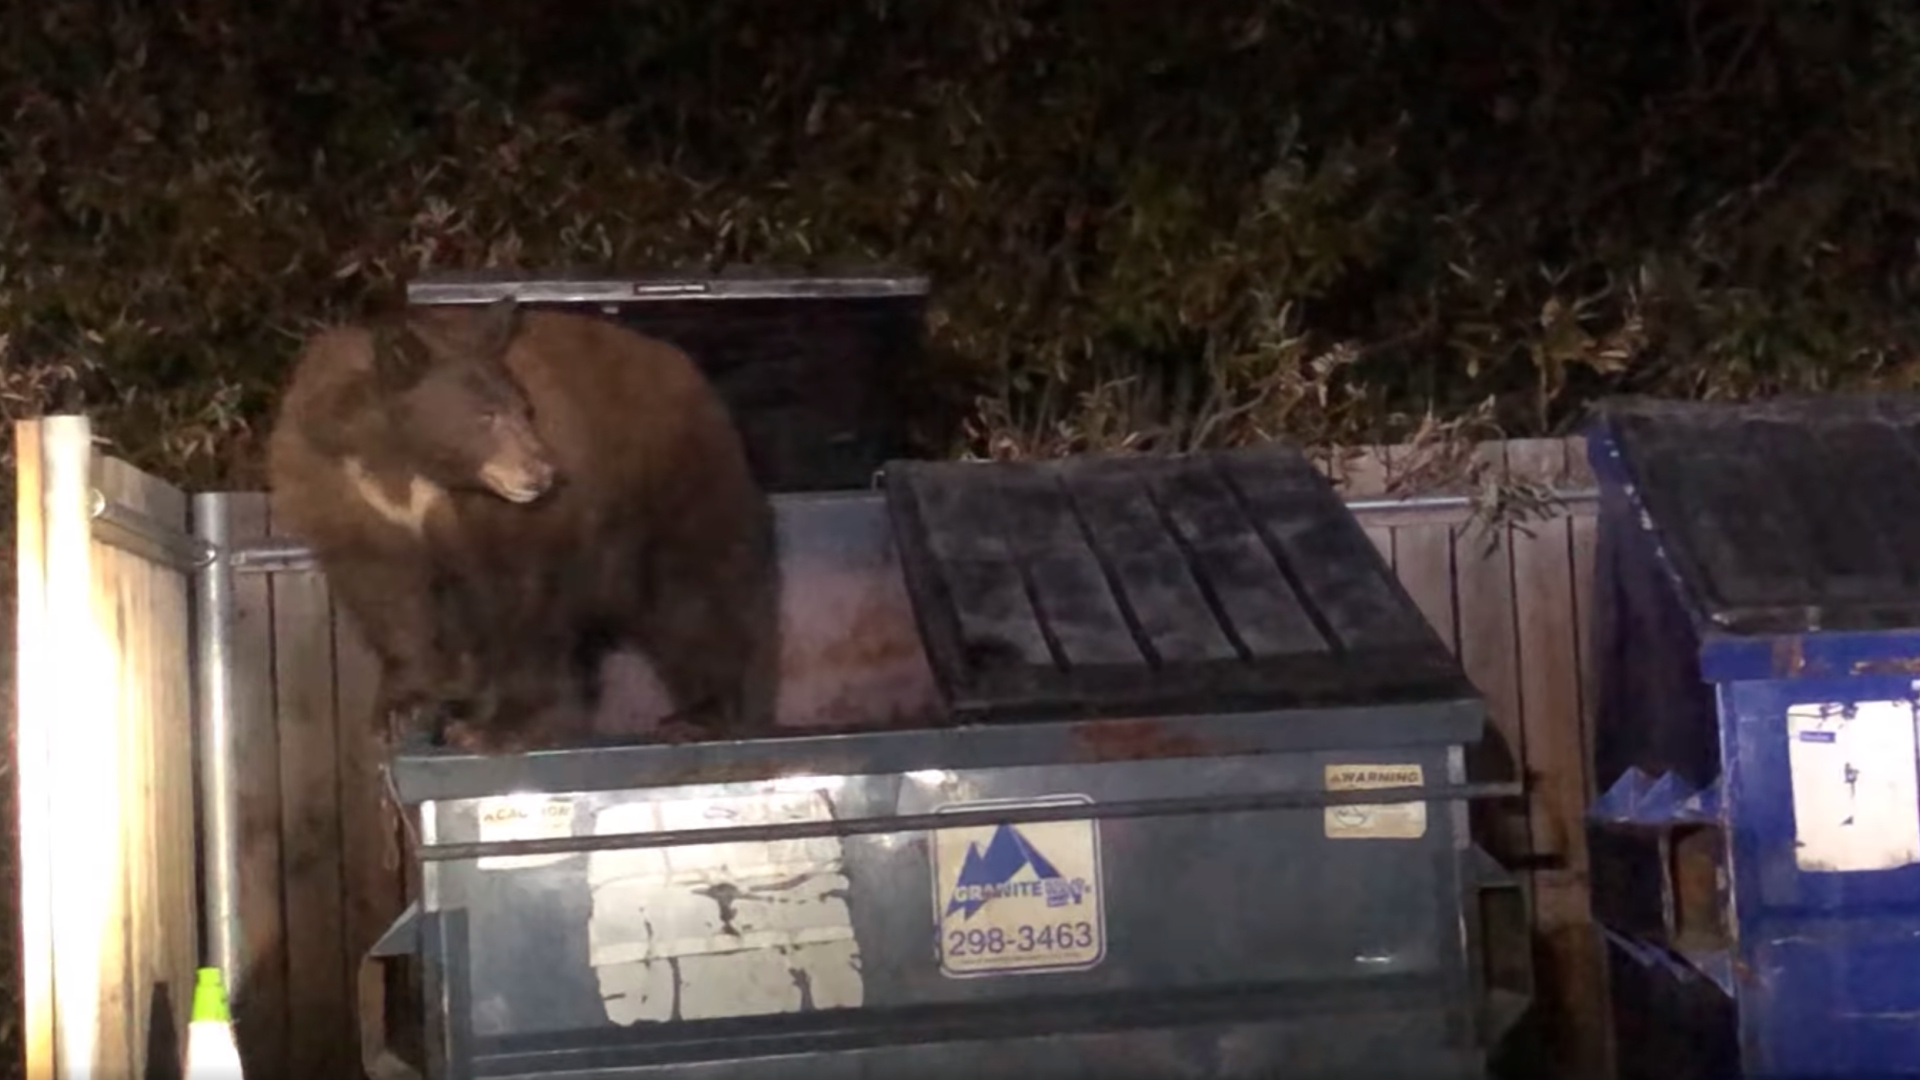 A pair of hungry bears were caught scavenging for food in dumpsters at Shaver Lake, California, on Nov. 22. (Fresno County Sheriff's Office via Storyful)